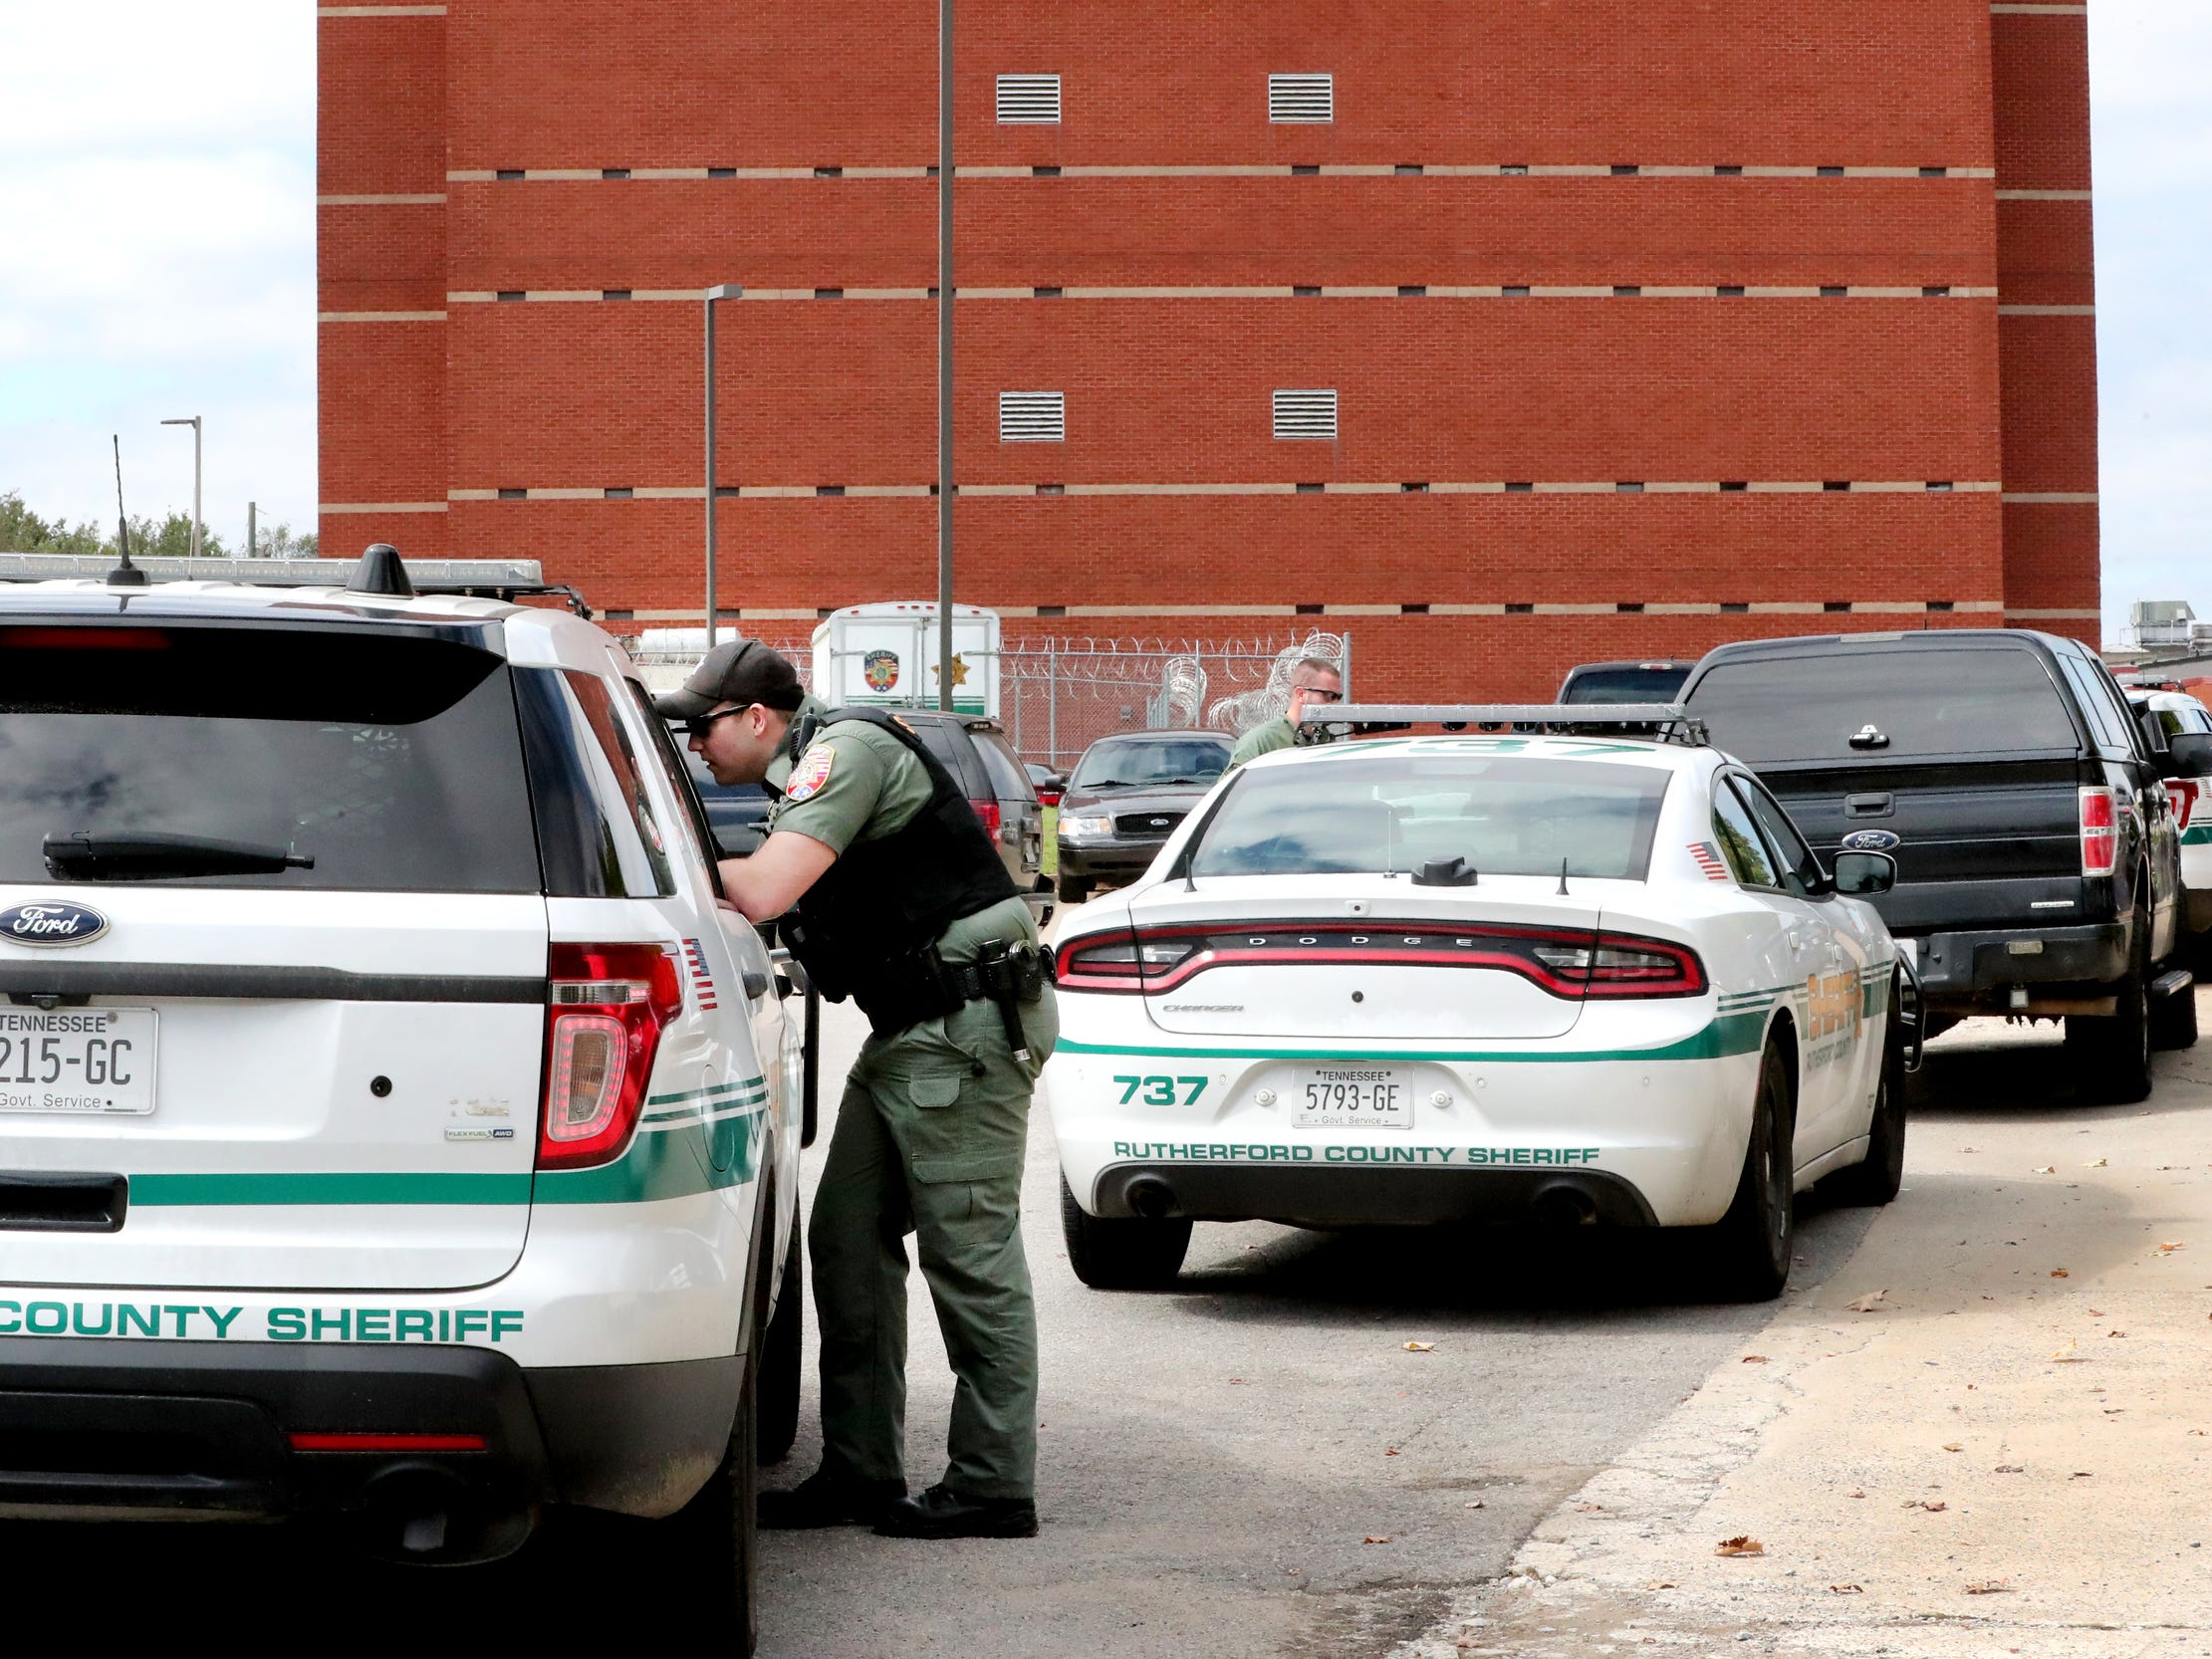 Sheriff Deputies at the Rutherford County Sheriff's Office as escapees Dewayne Halfacre and cellmate Jonathan Baxter are returned to the jail on Thursday, Oct. 11, 2018. According to officials Halfacre and Baxter assaulted a deputy at the county jail before escaping early Wednesday morning.